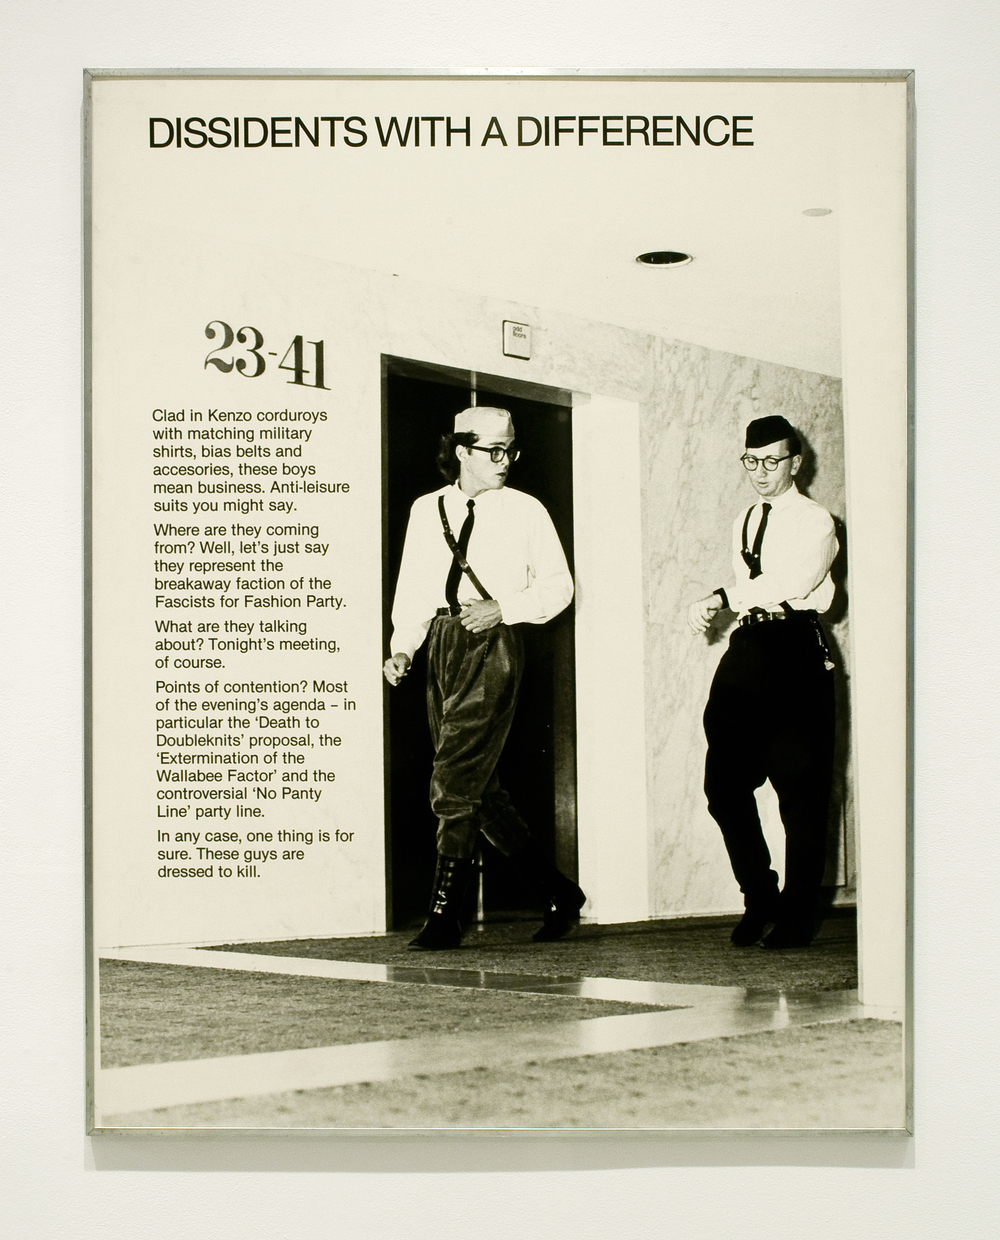 David Buchan, Modern Fashions Suite: Dissidents with a Difference, 1977. Collection University of Lethbridge Art Gallery.